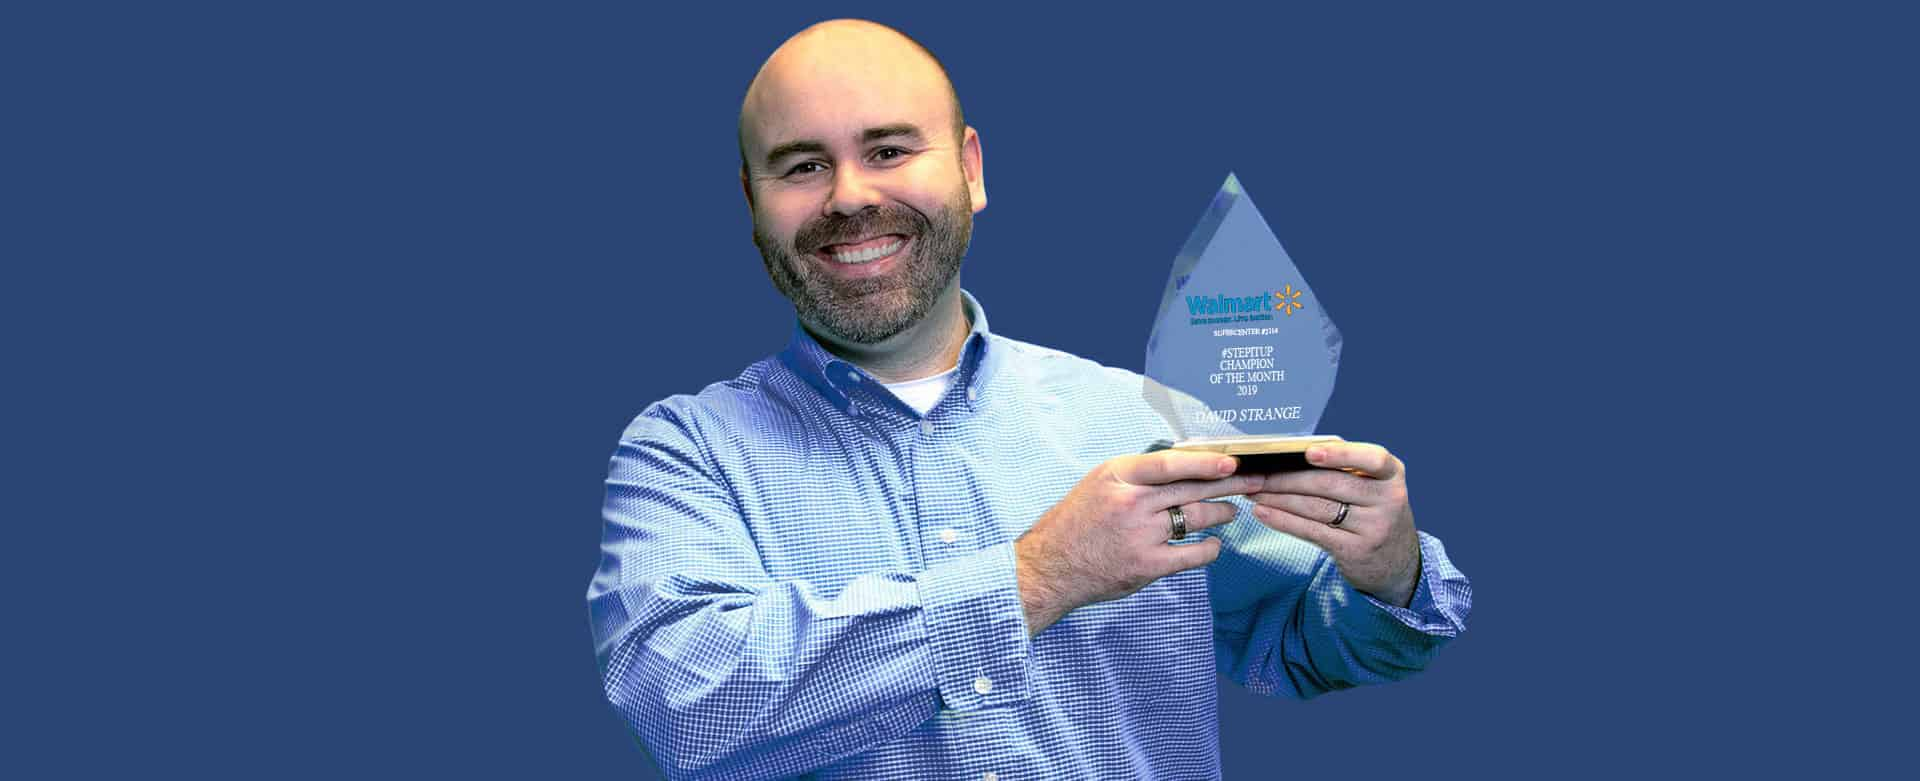 employee holding acrylic prism with Wal-mart logo on it